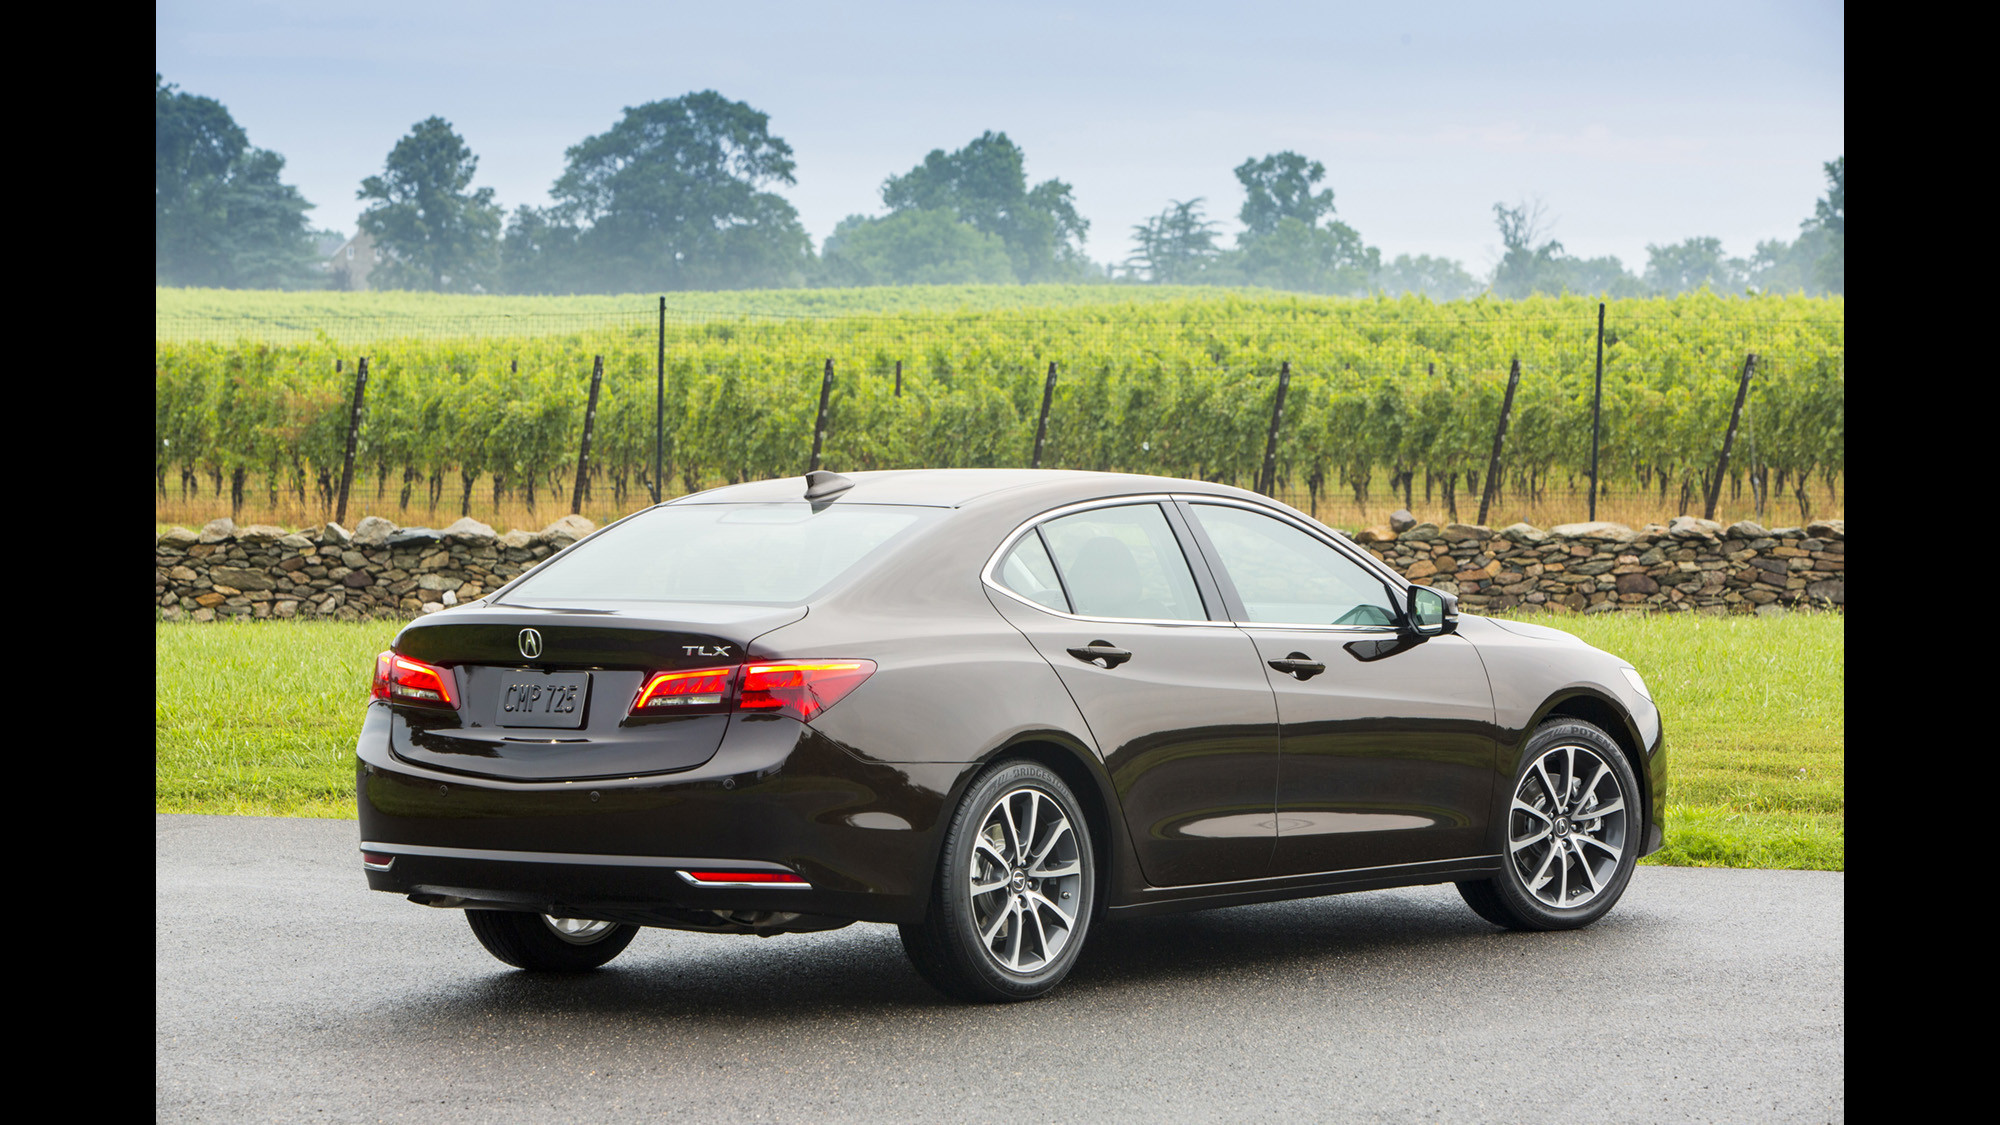 Acura combines two middling sedans into one competent model with the 2015 TLX